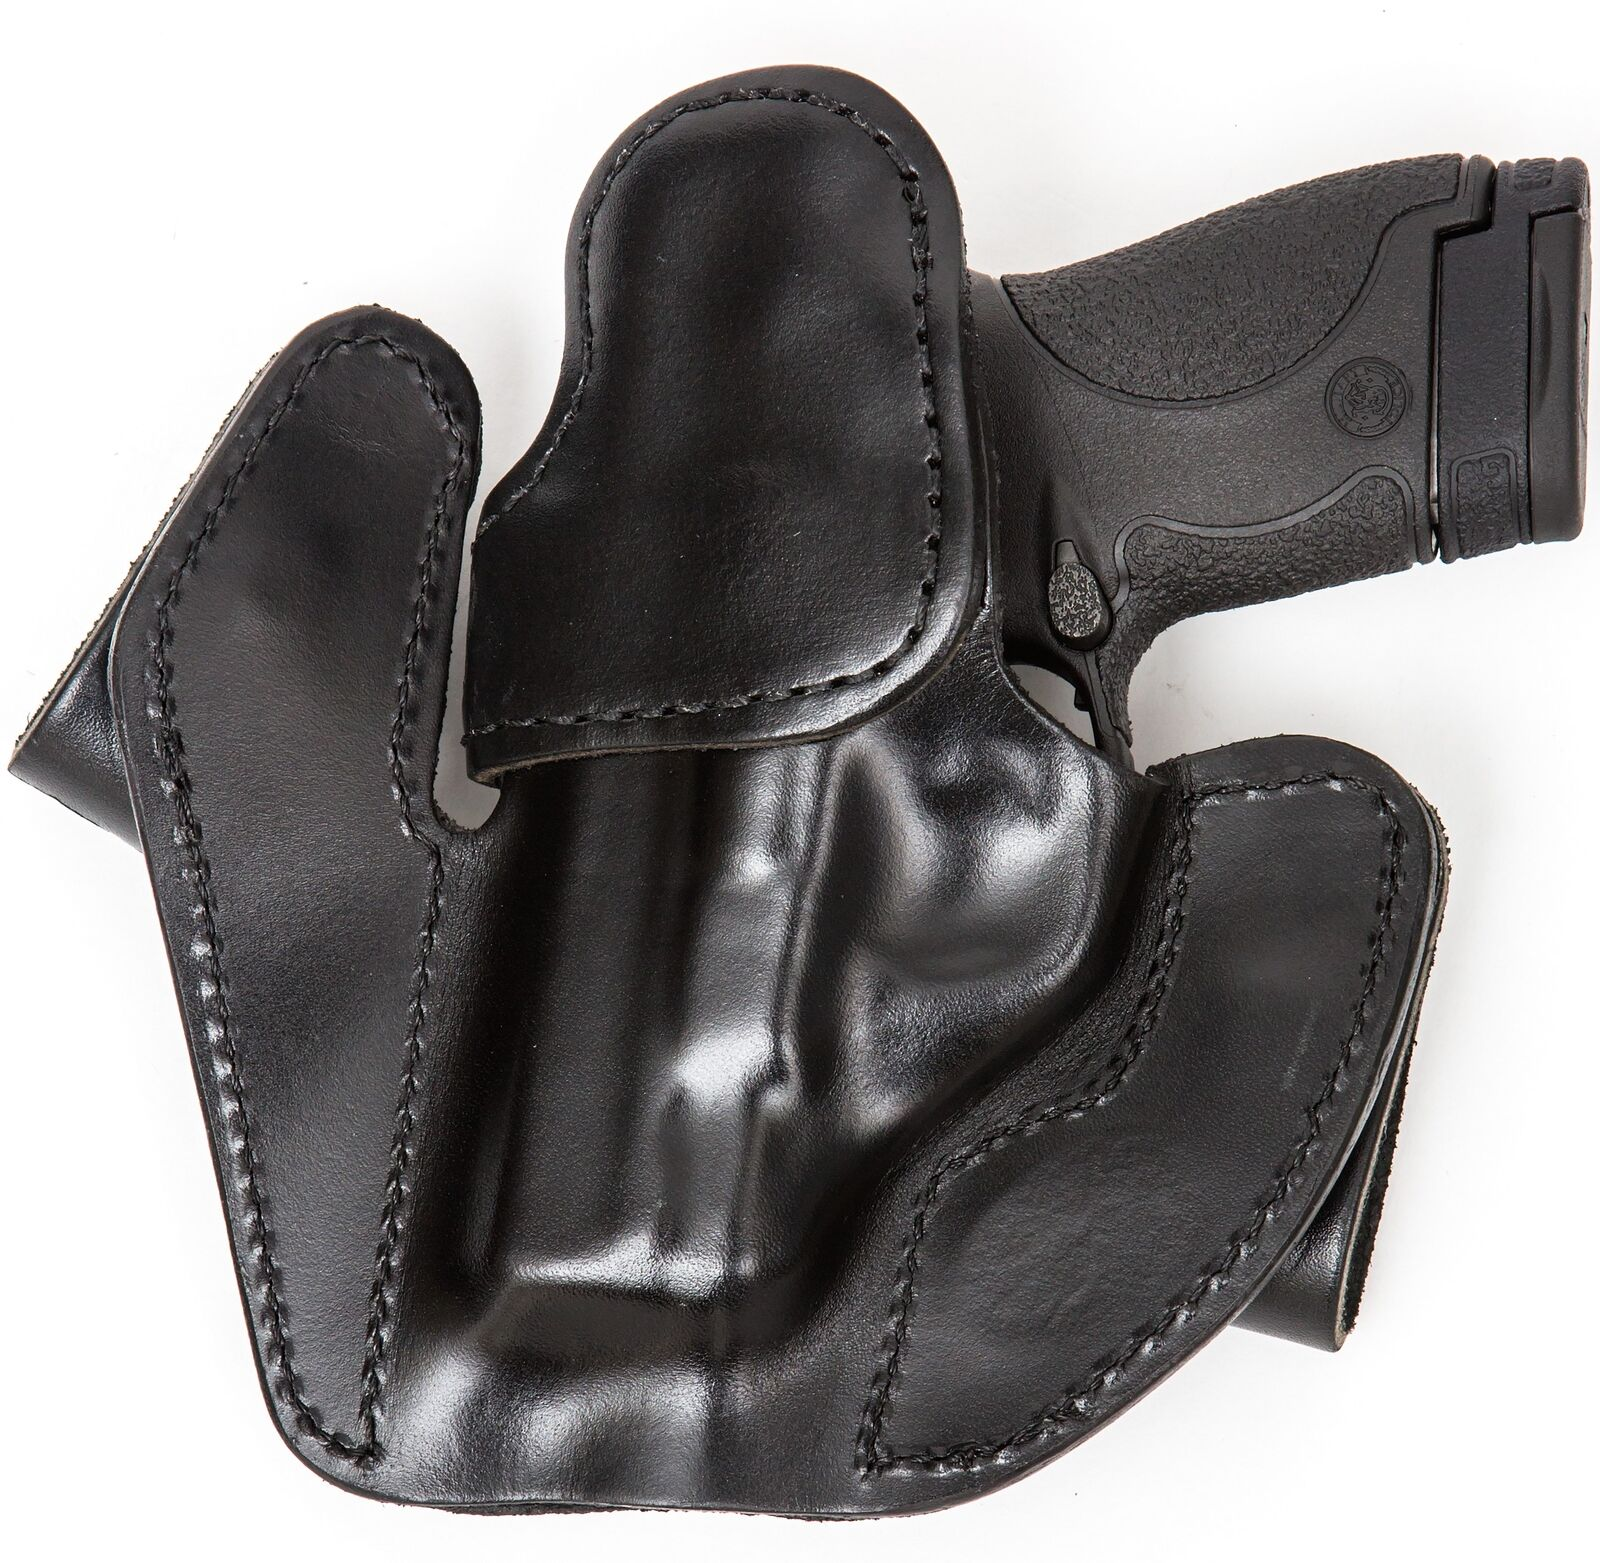 XTREME CARRY RH LH IWB Leder Gun Gun Gun Holster For Para 1911 3